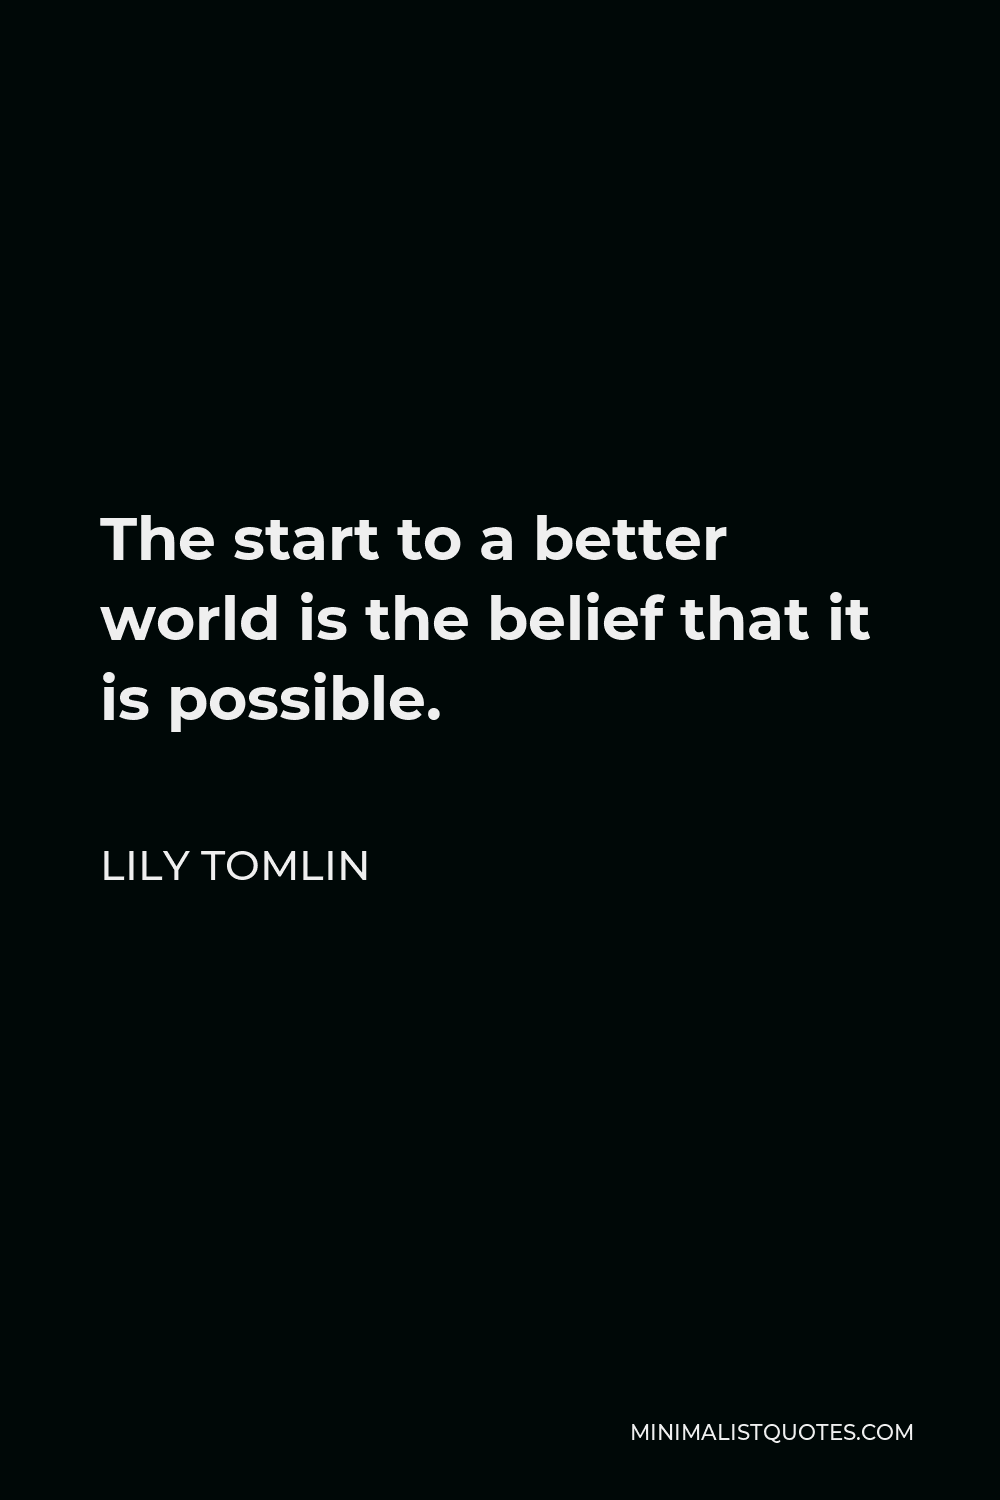 Lily Tomlin Quote - The start to a better world is the belief that it is possible.